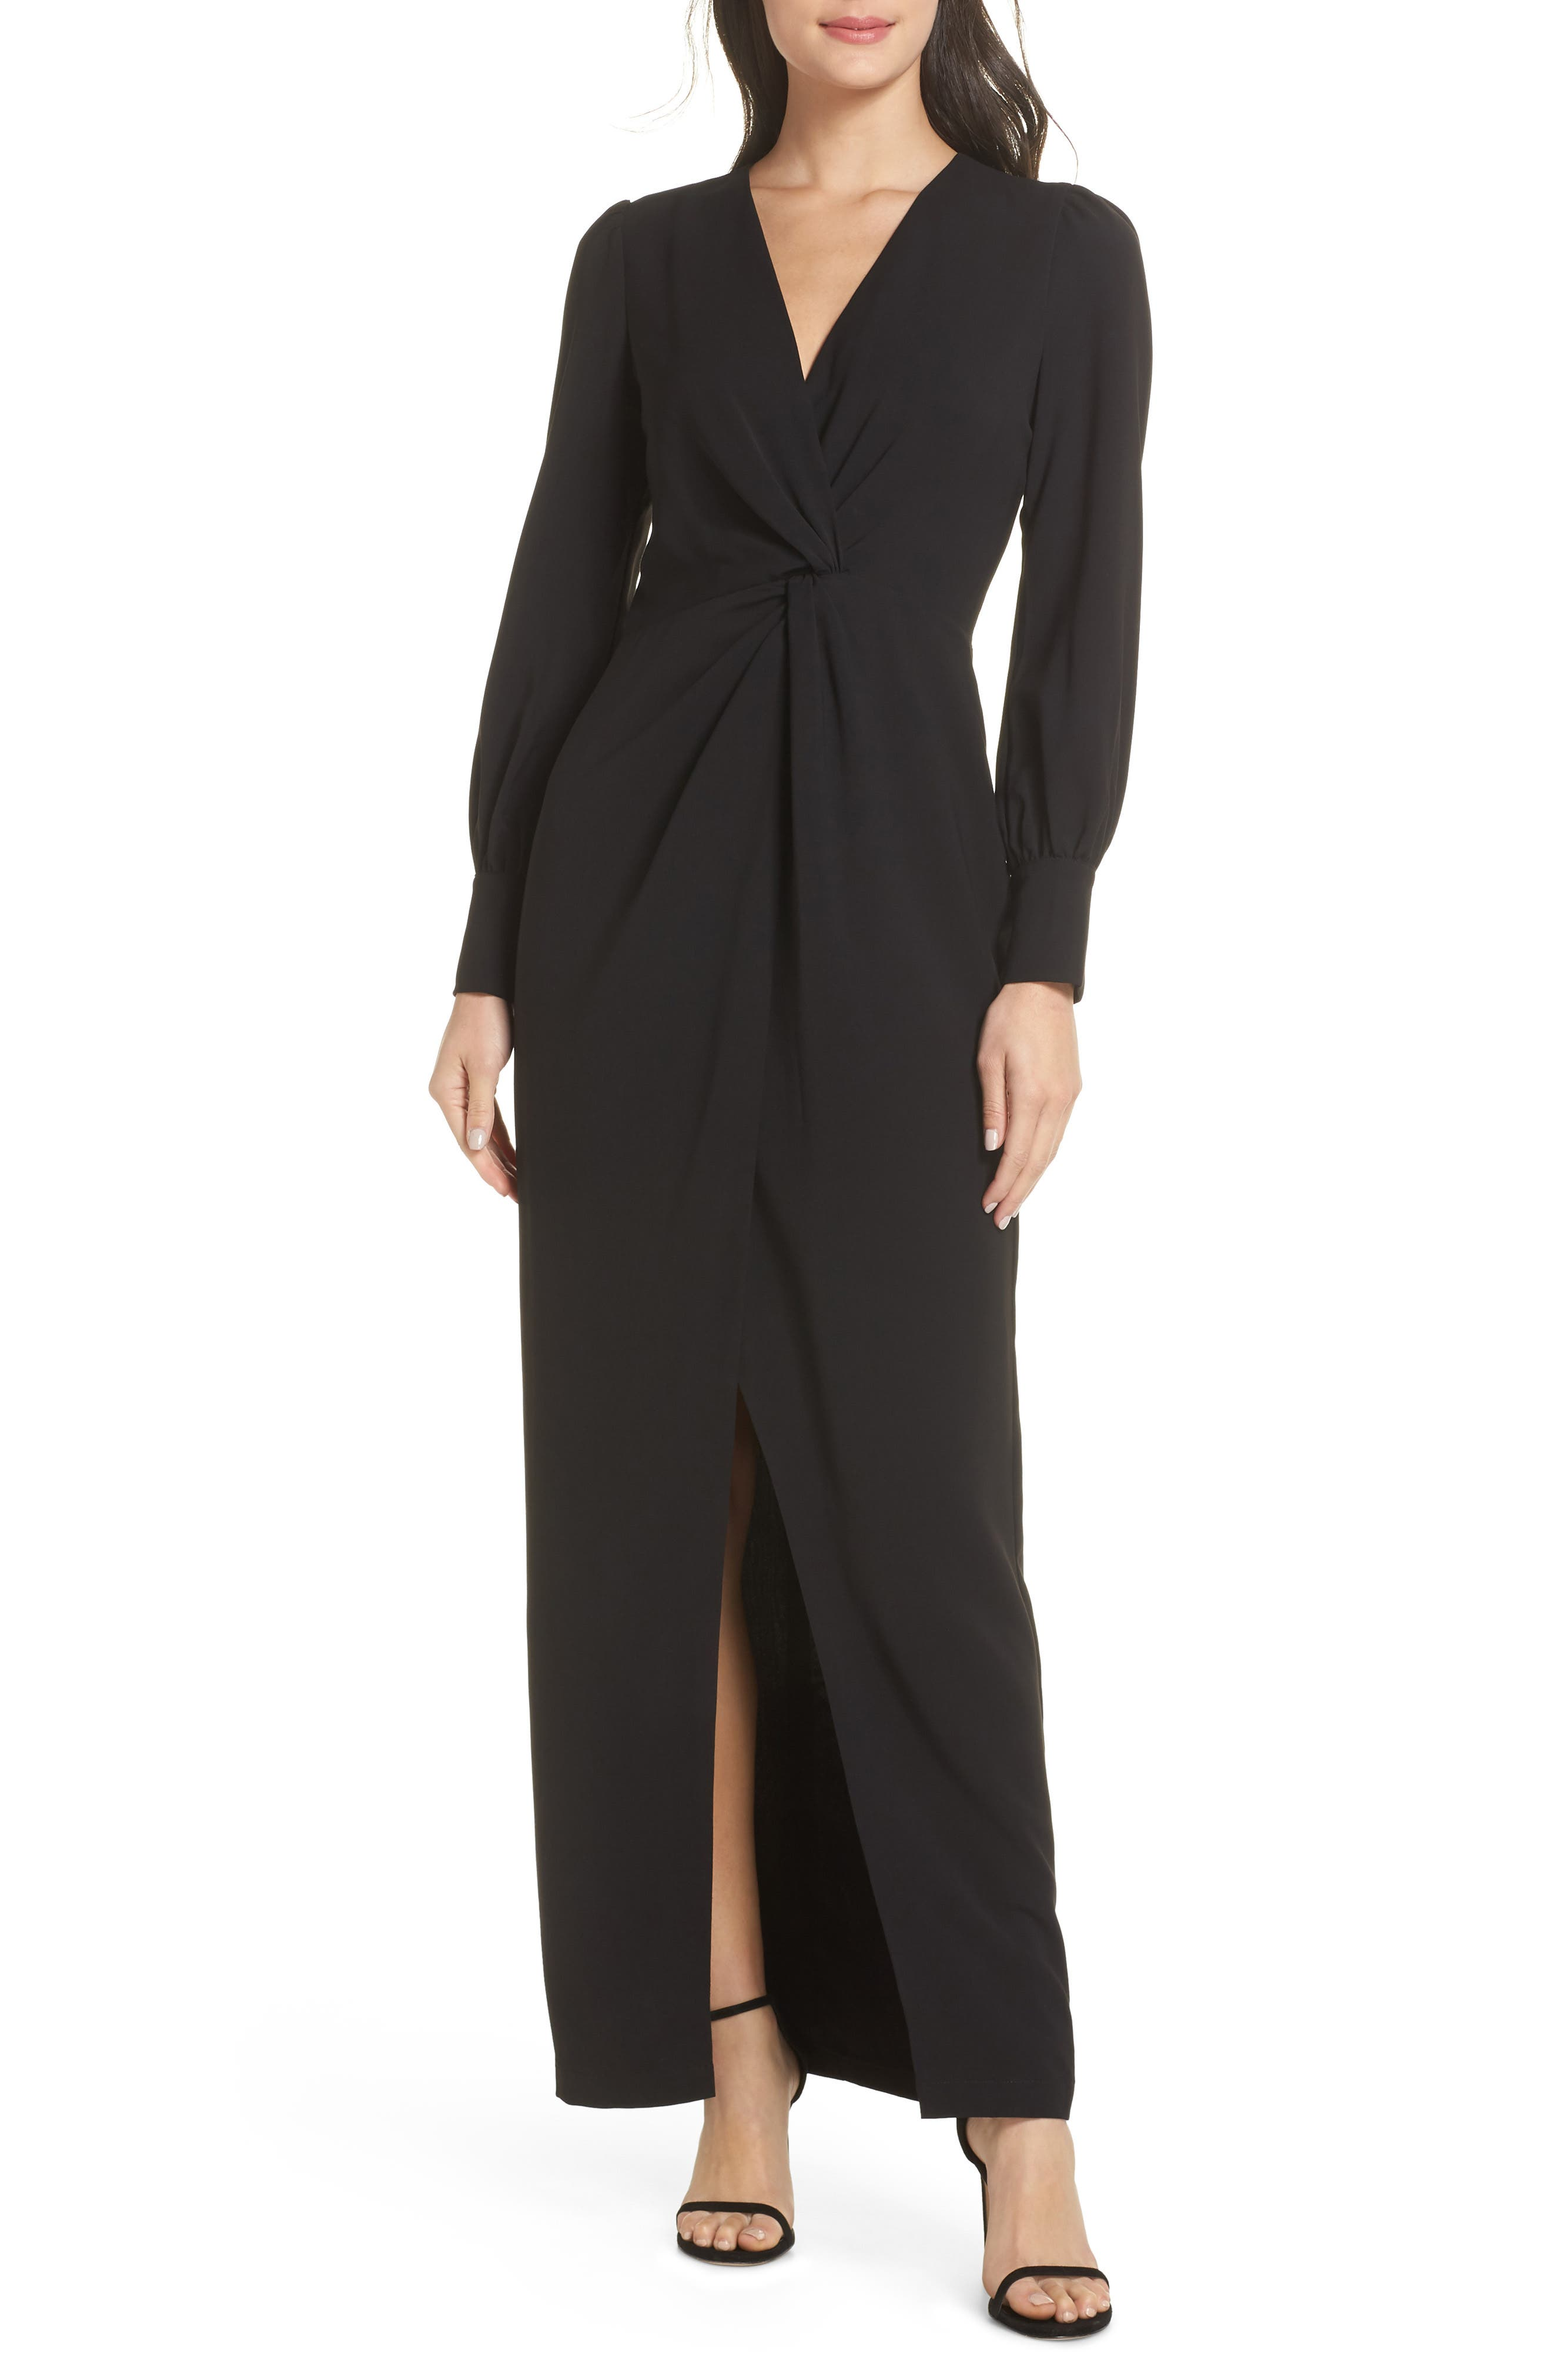 HARLYN Twist Front Faux Wrap Gown in Black